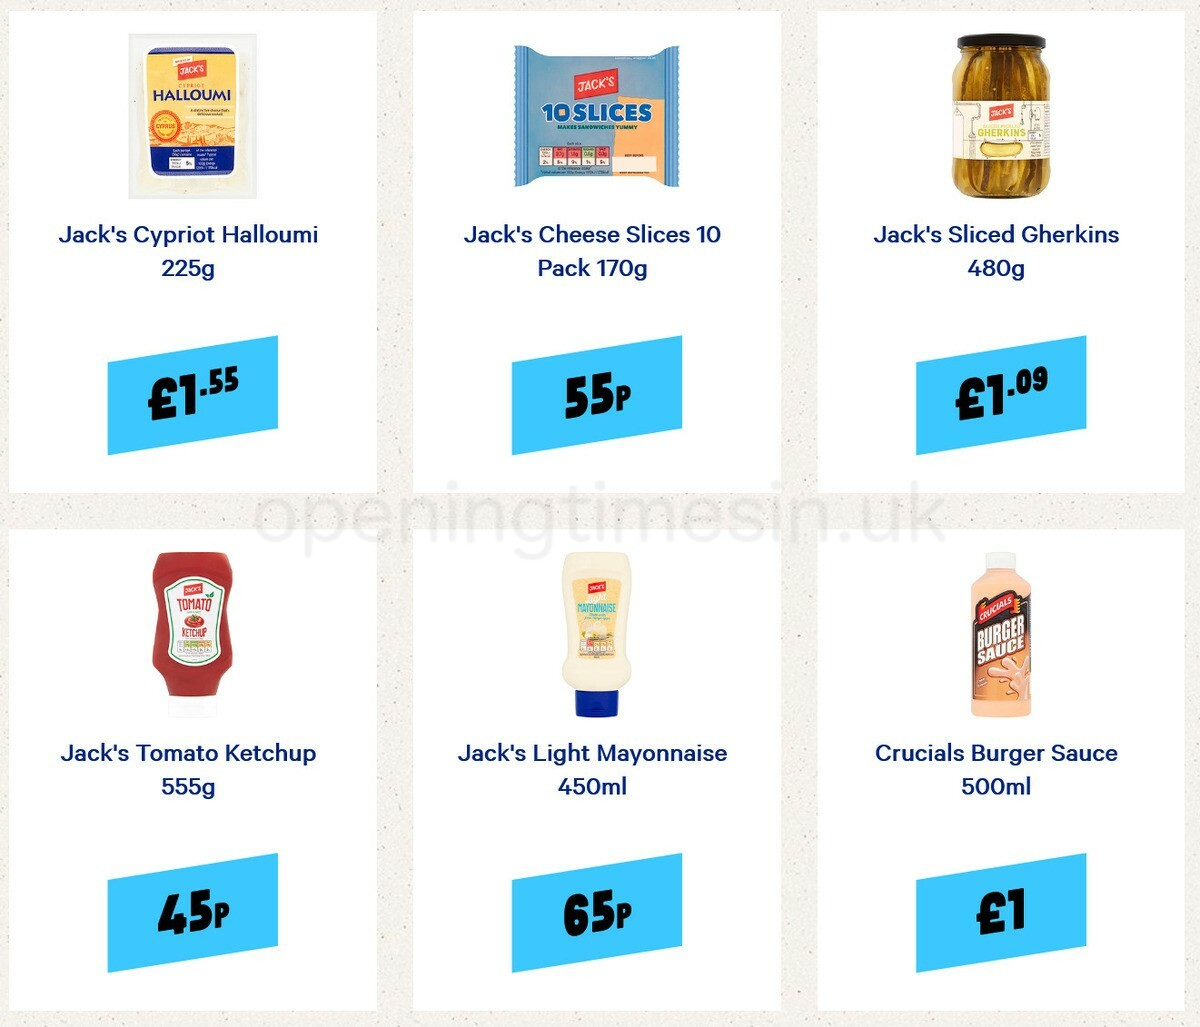 Jack's Offers from April 30